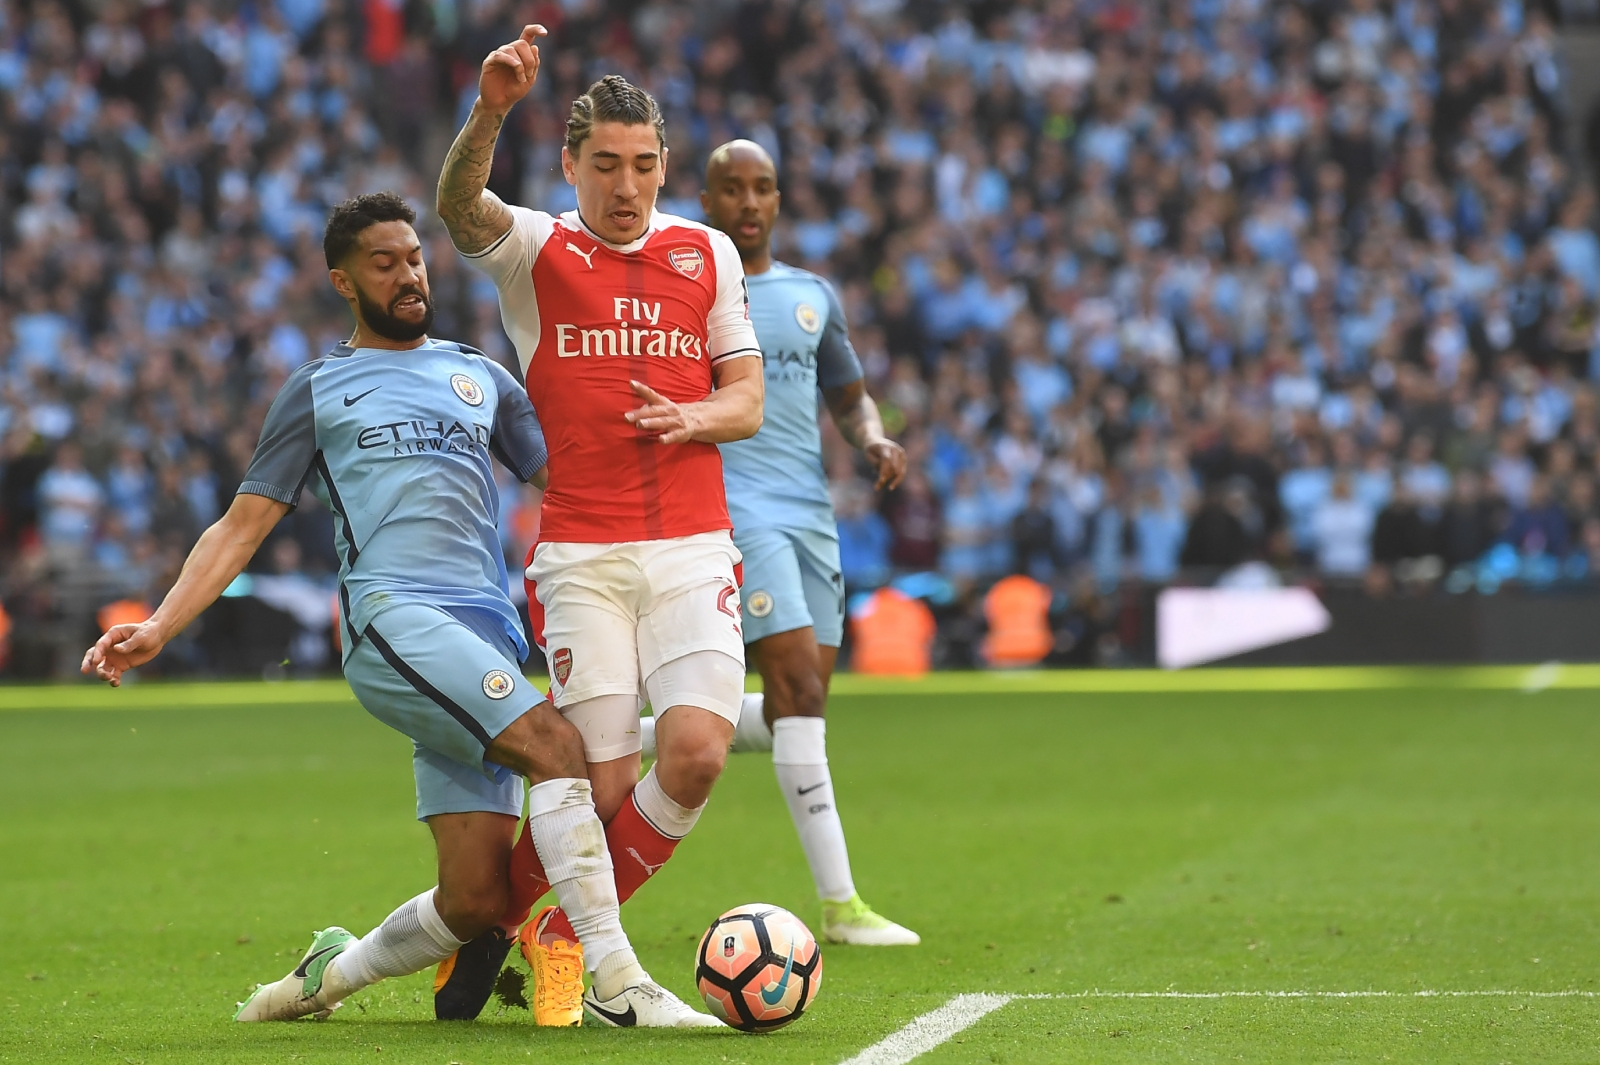 Man City make history in FA Cup semi-final against Arsenal